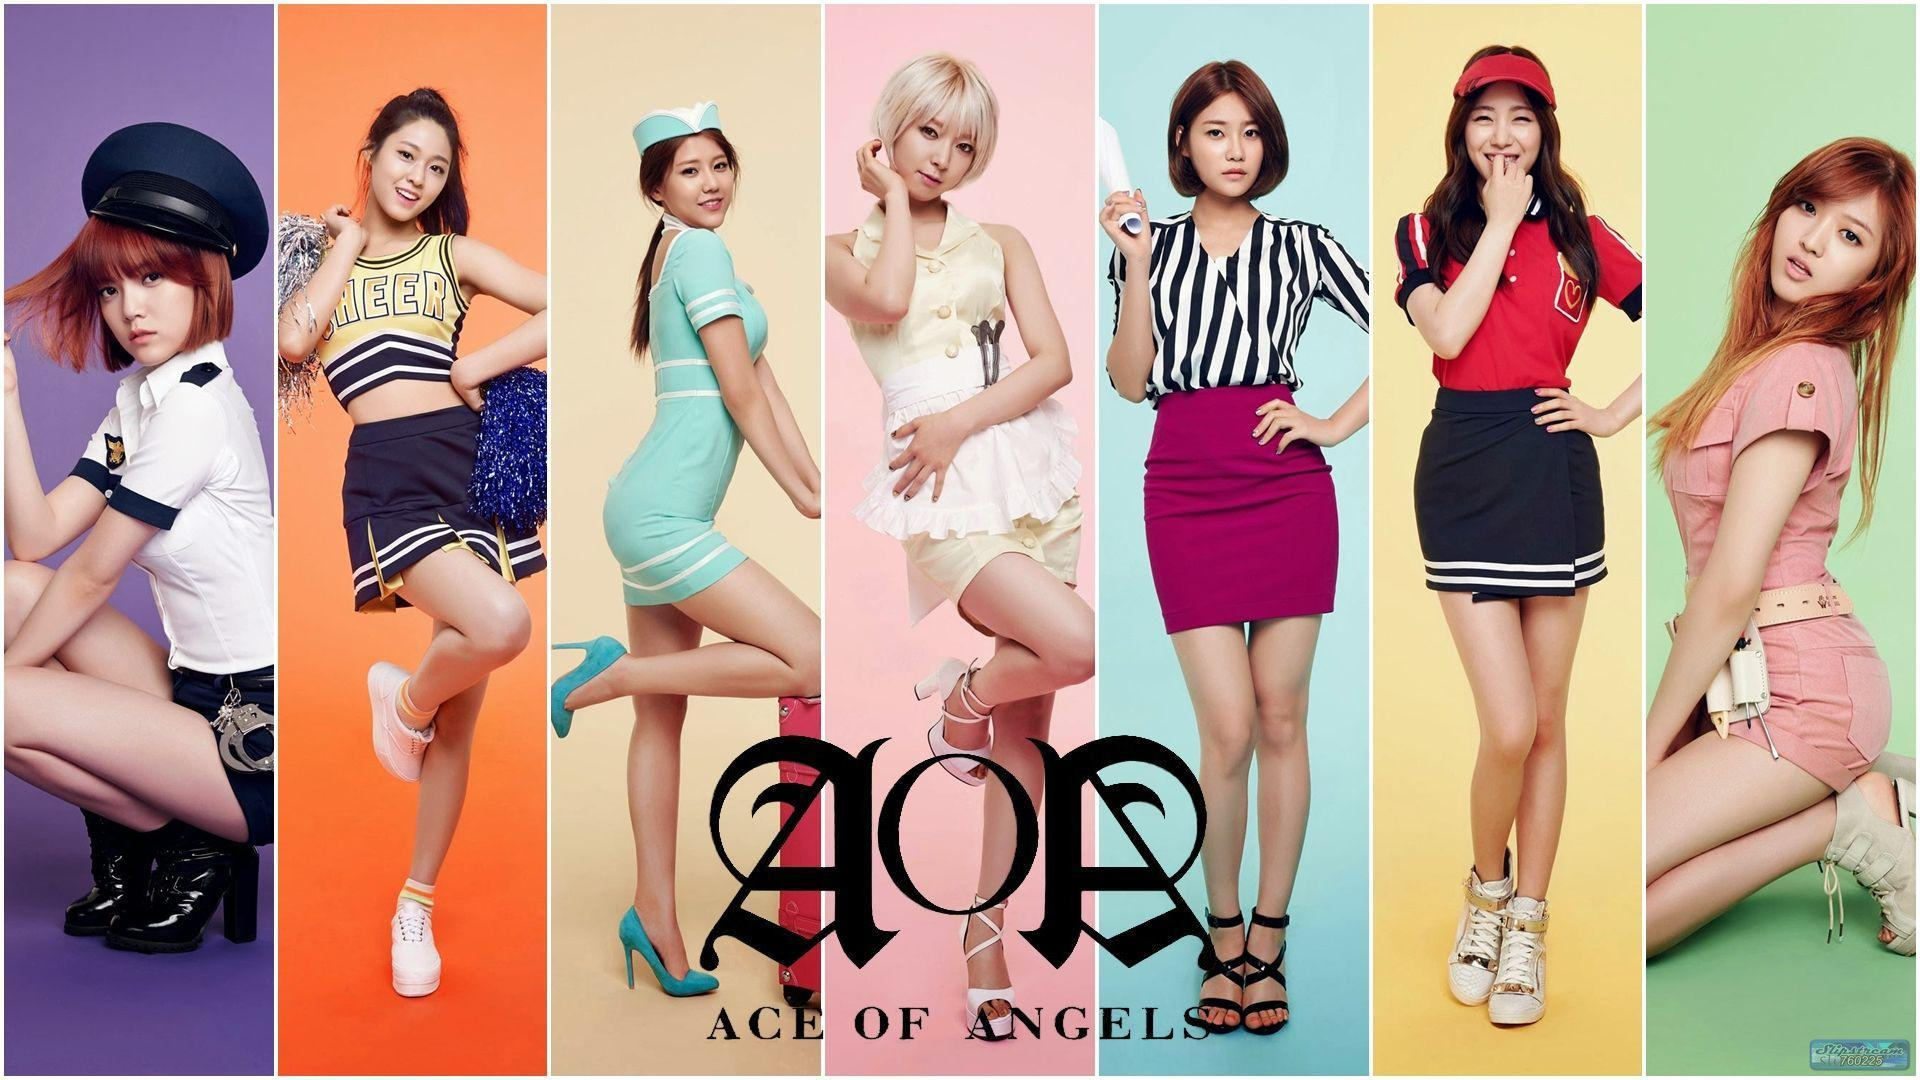 Aoa Wallpapers Wallpaper Cave